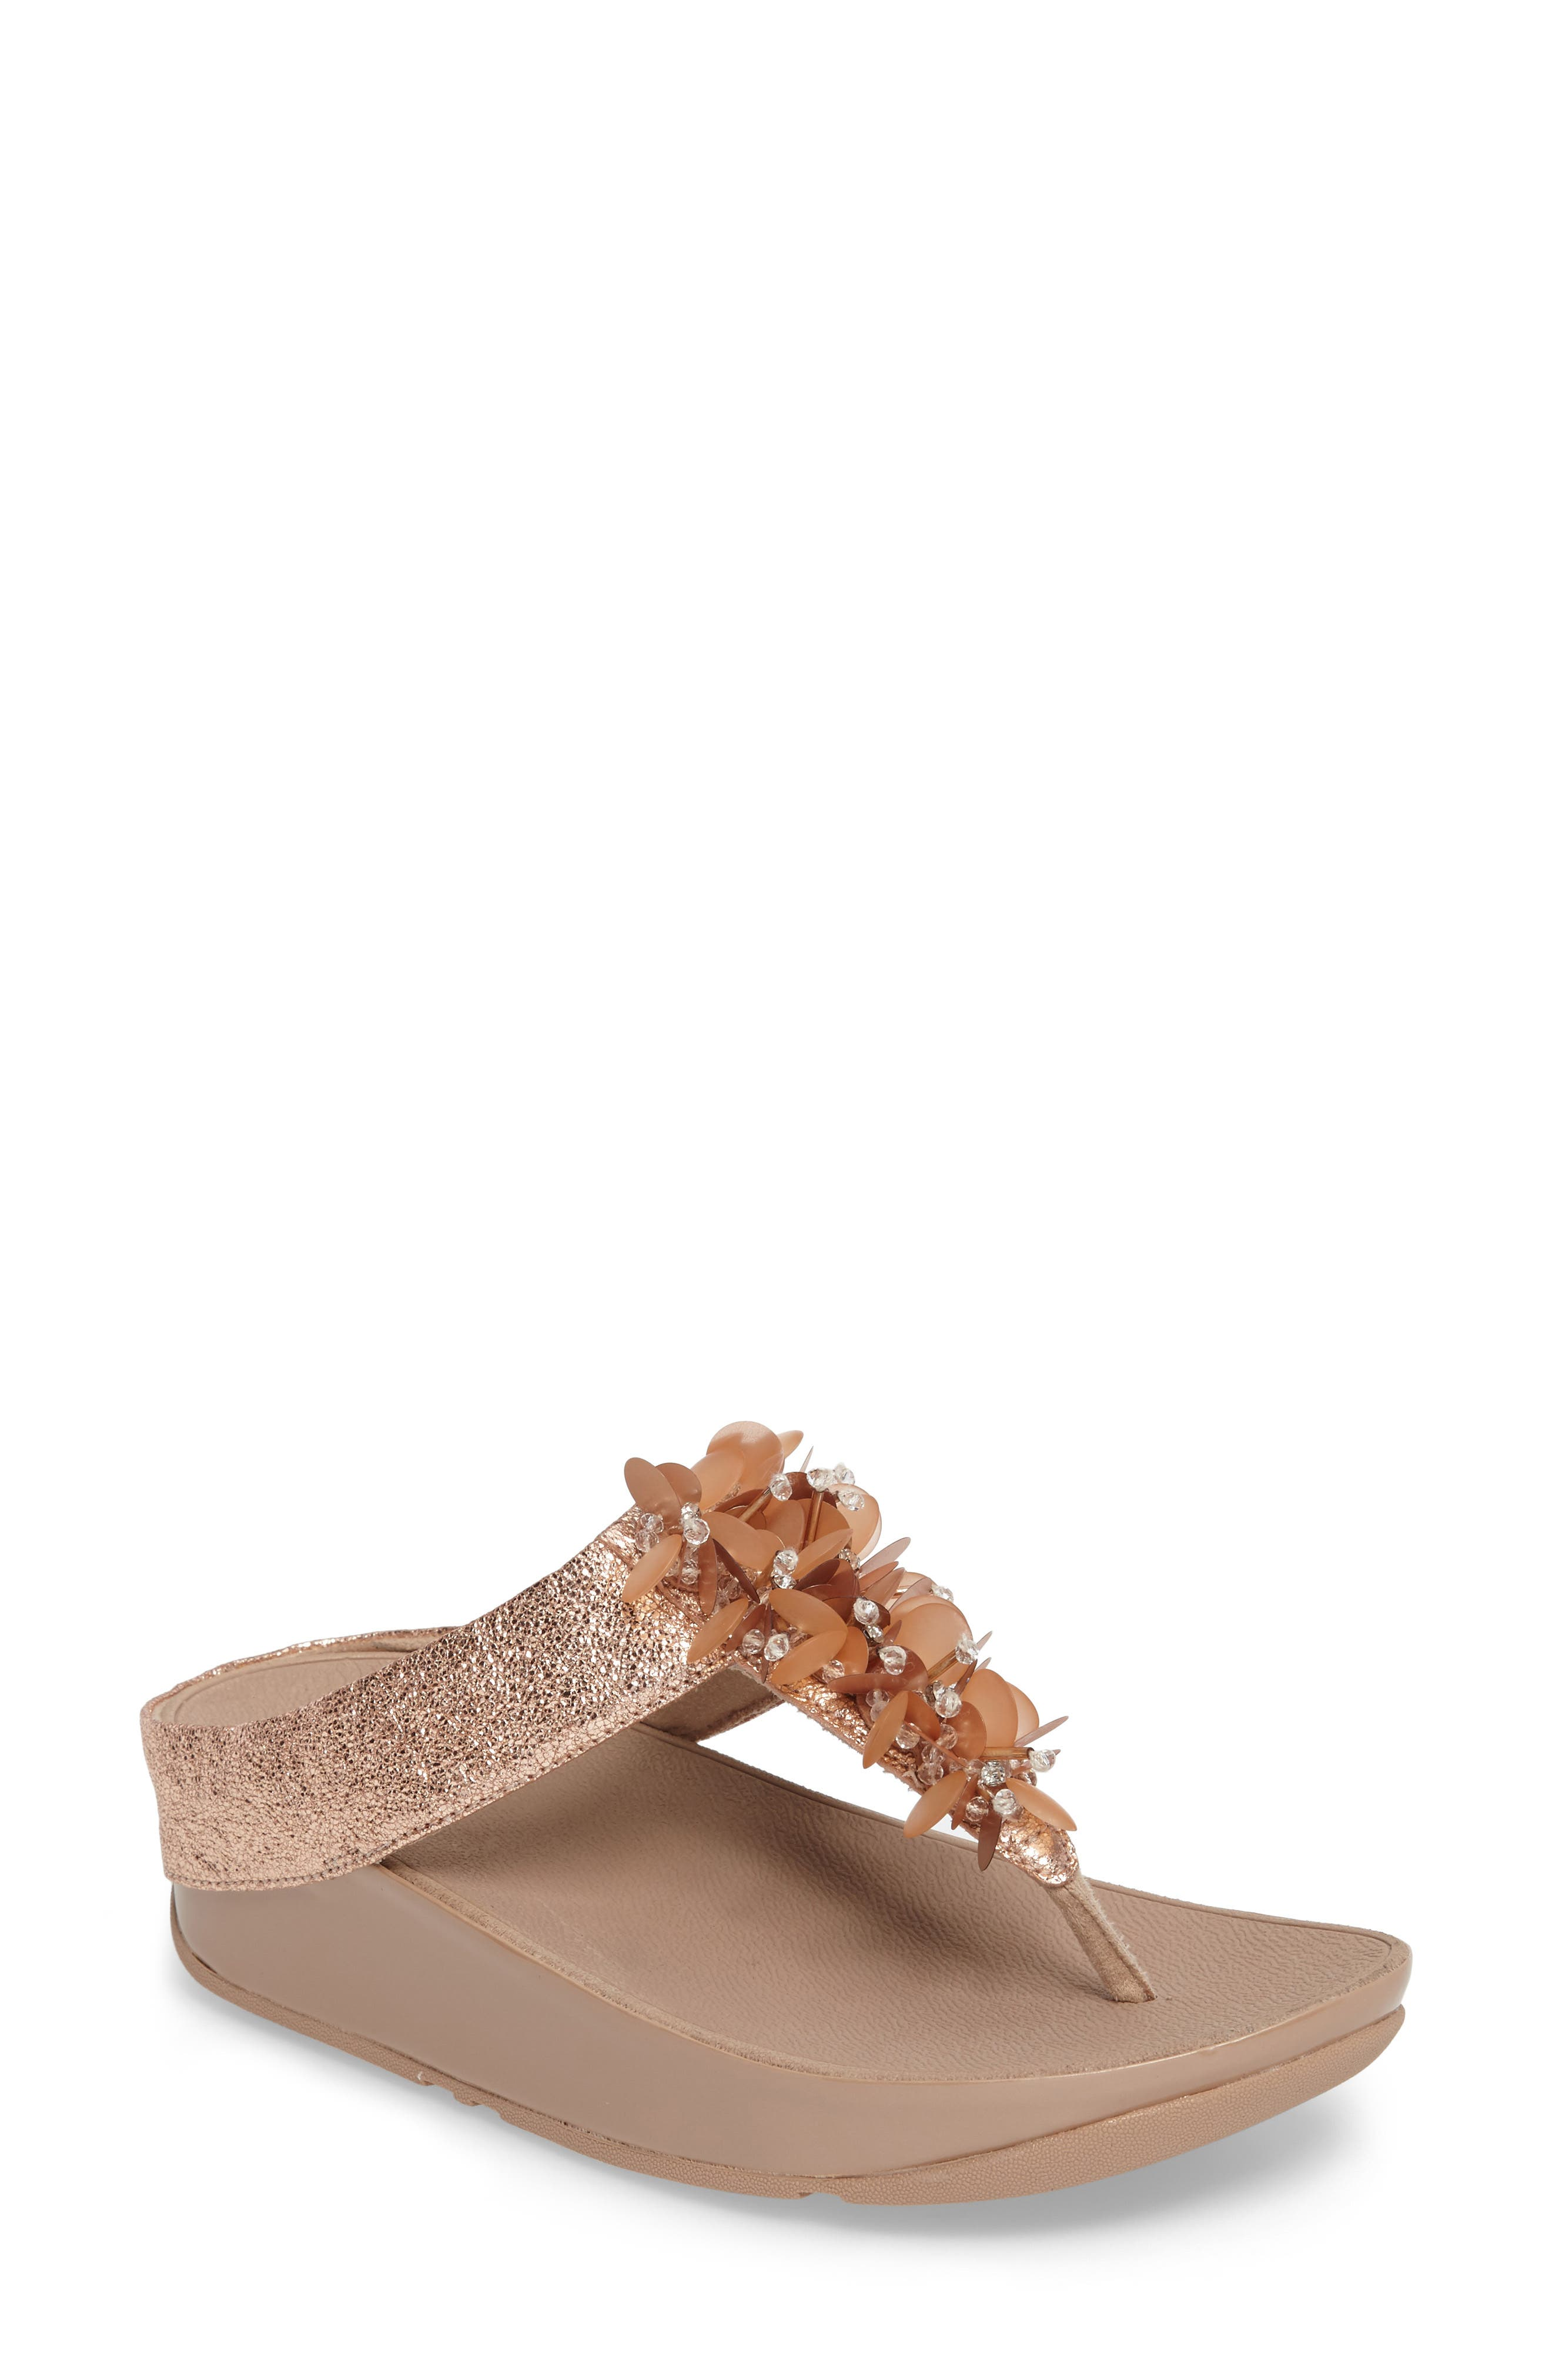 Boogaloo Sandal,                             Main thumbnail 1, color,                             Rose Gold Leather